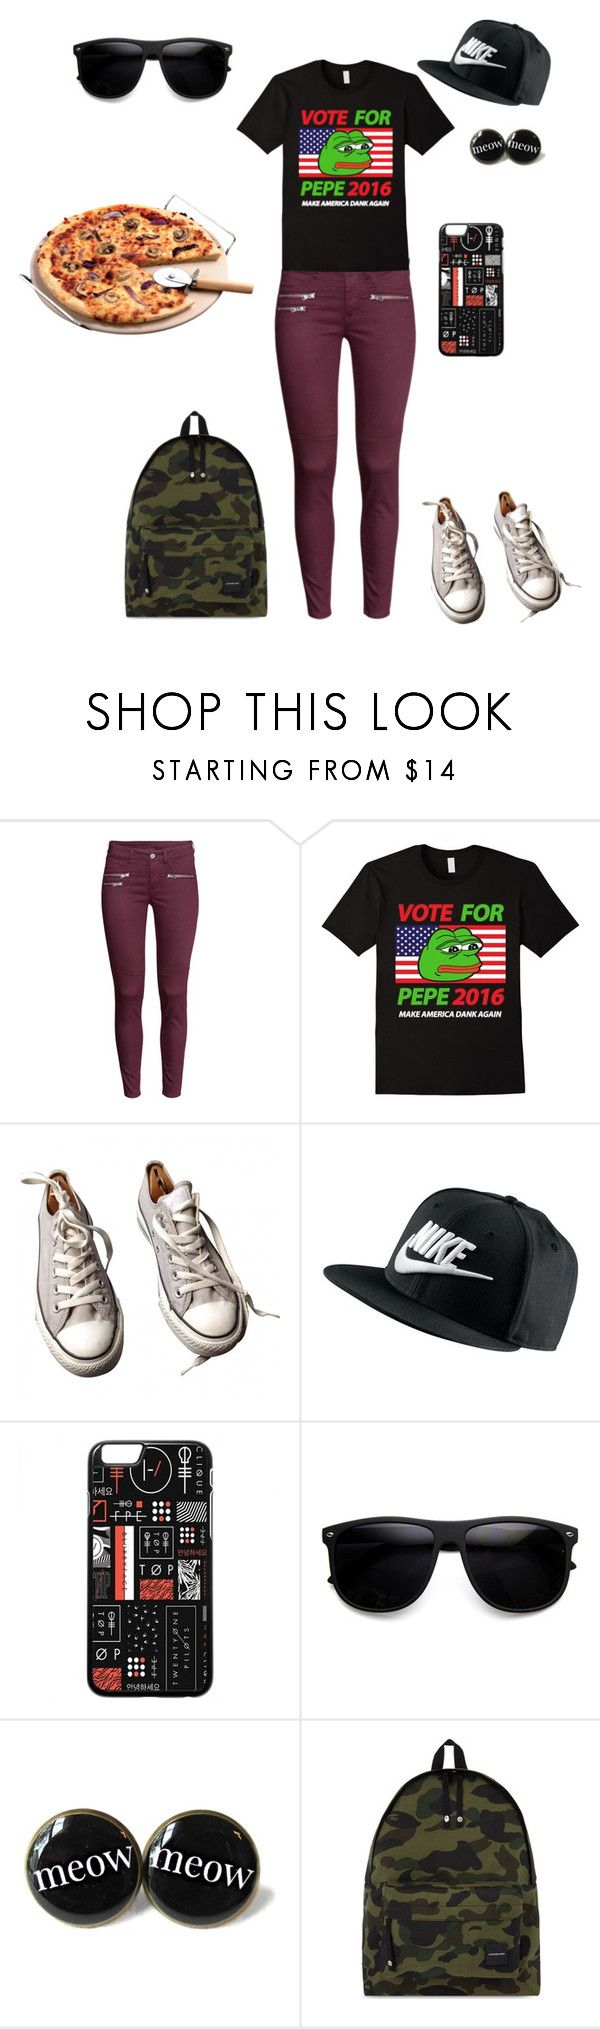 """""""What is this?"""" by cupcakes-fave-fashion ❤ liked on Polyvore featuring H&M, PèPè, Converse, NIKE, A BATHING APE, weird, casualoutfit, pizza and pepeforpresident"""